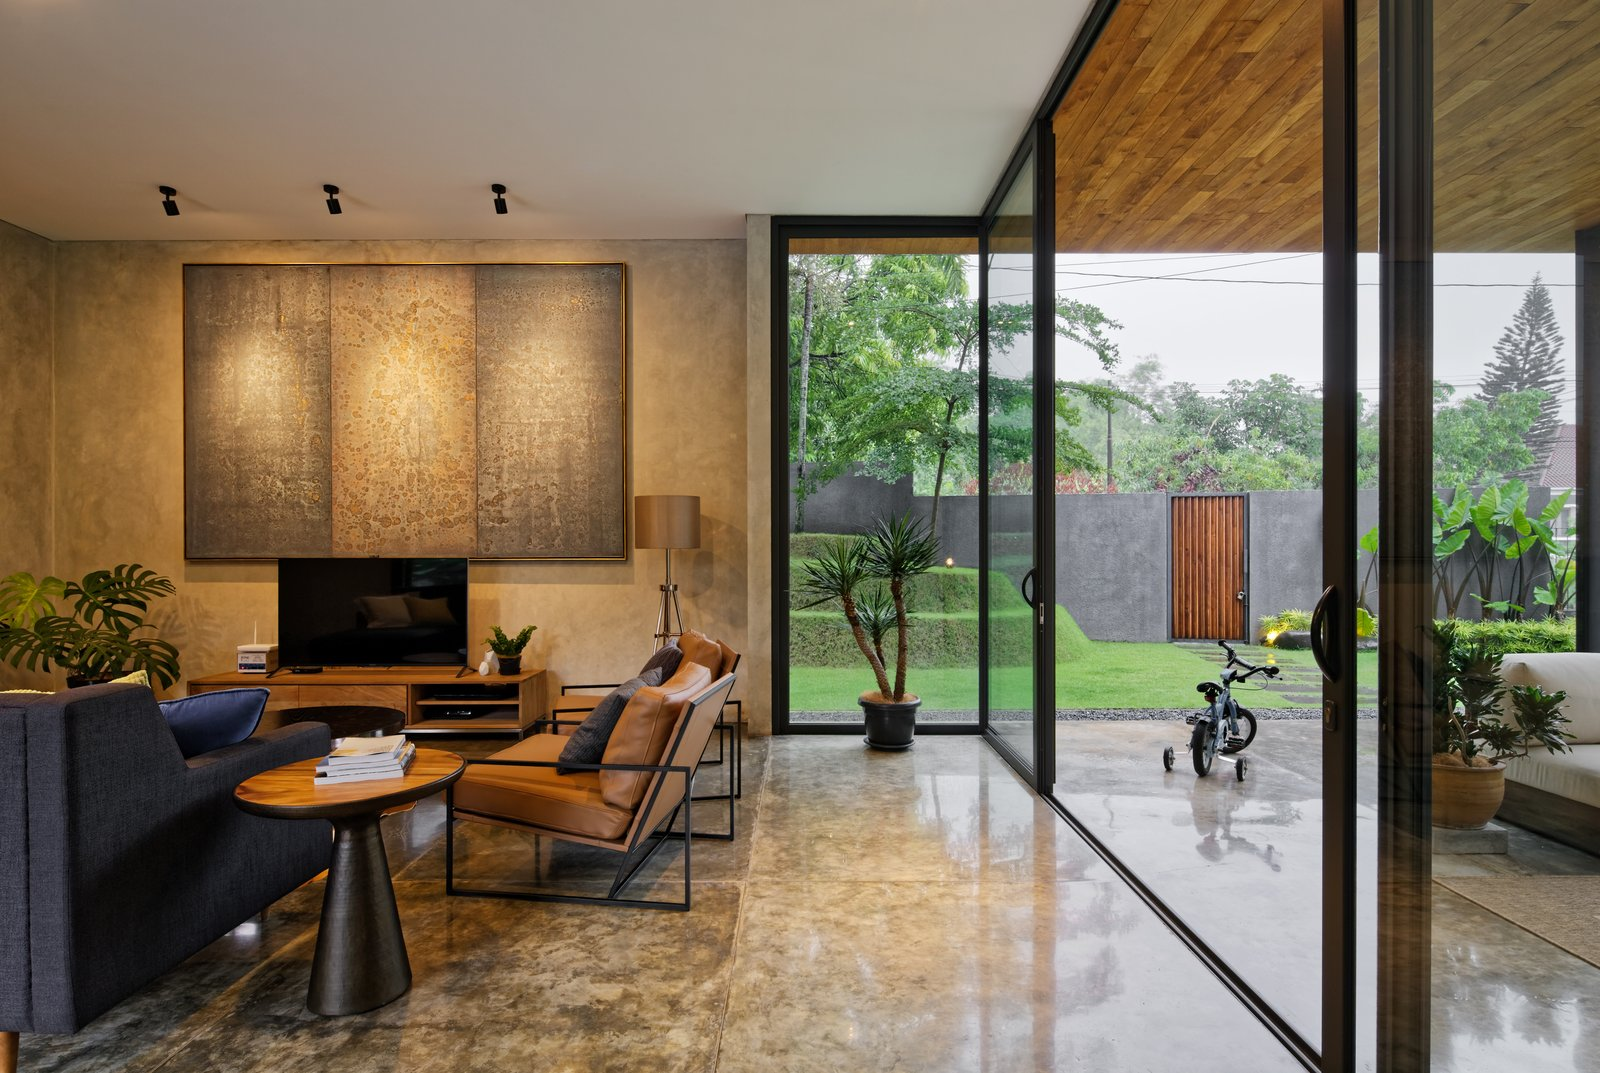 Living room relationship to outdoor terrace